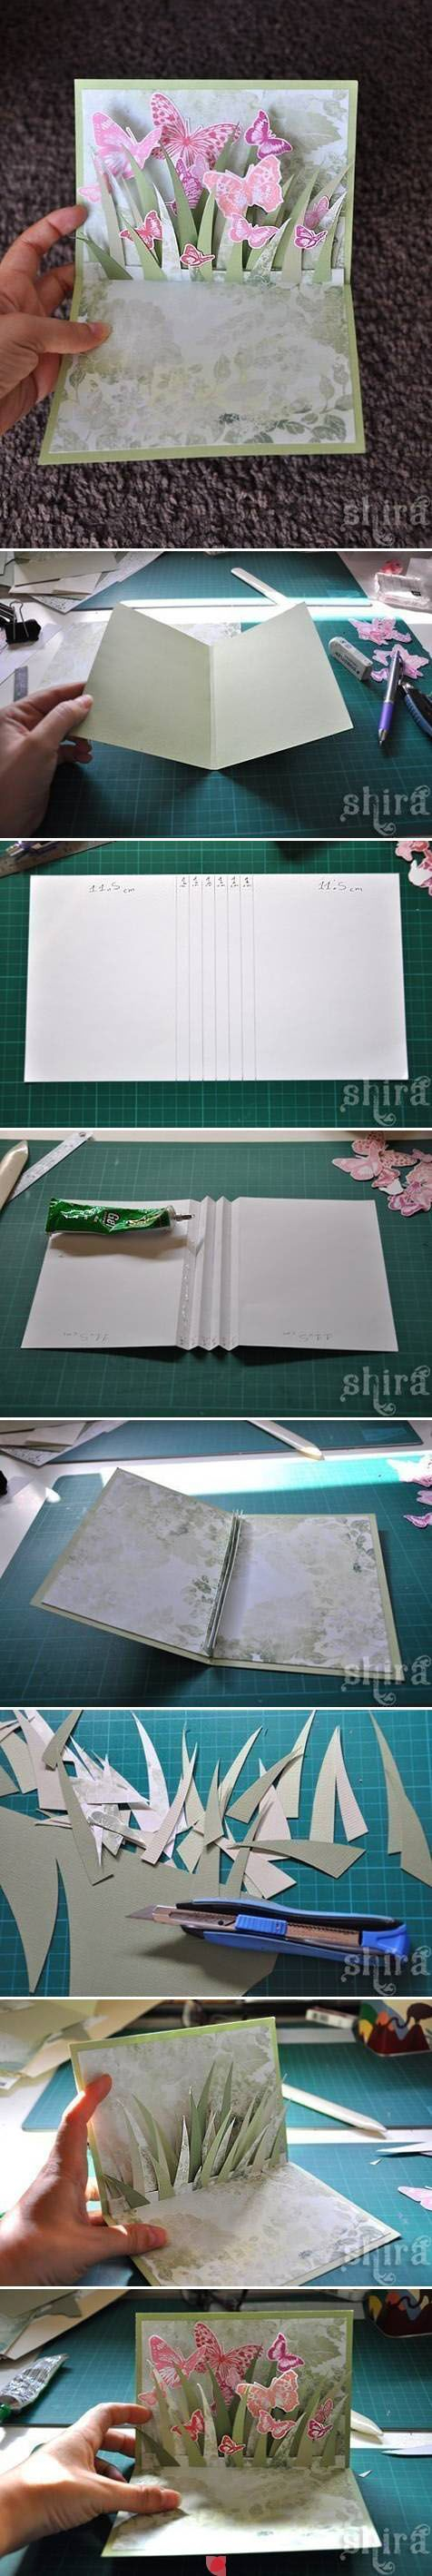 The coloring book of cards and envelopes flowers and butterflies - Diy Butterfly Card Diy Butterfly Card These Are The Directions You Would Seem To Need A Patterned Paper Overtop Of The Plain To Make The Background